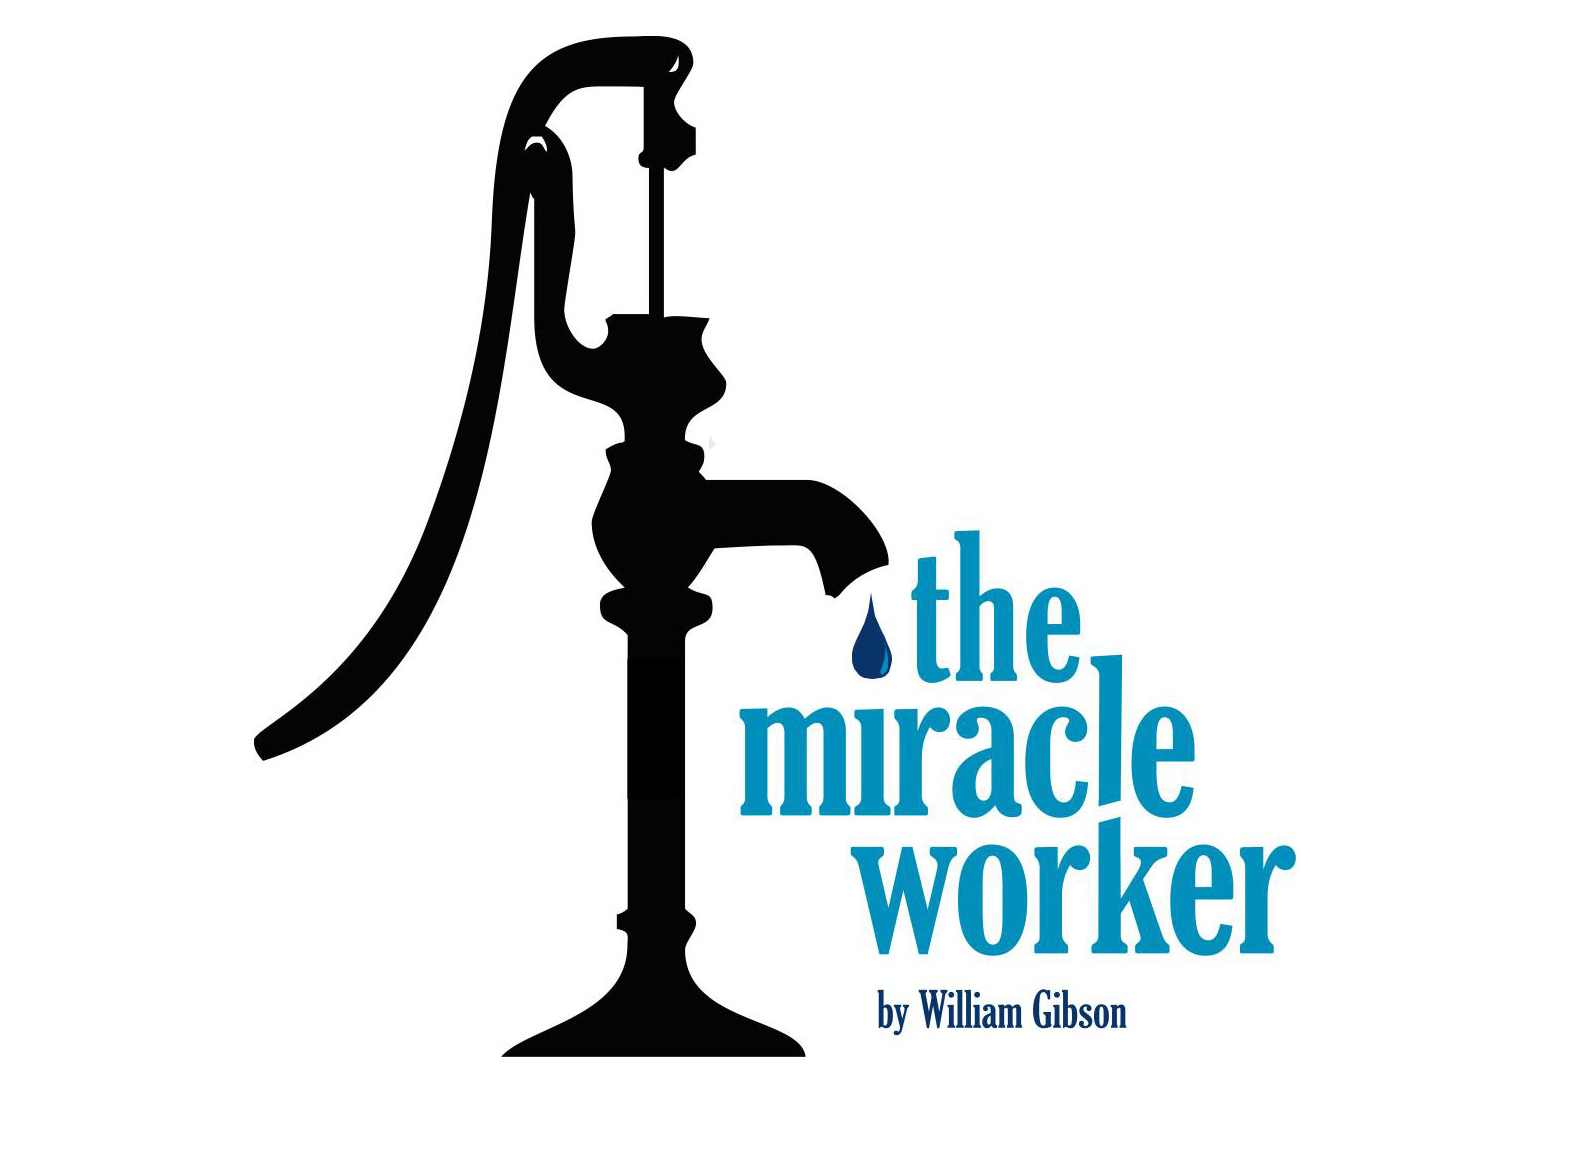 the-miracle-worker-march-29-2017